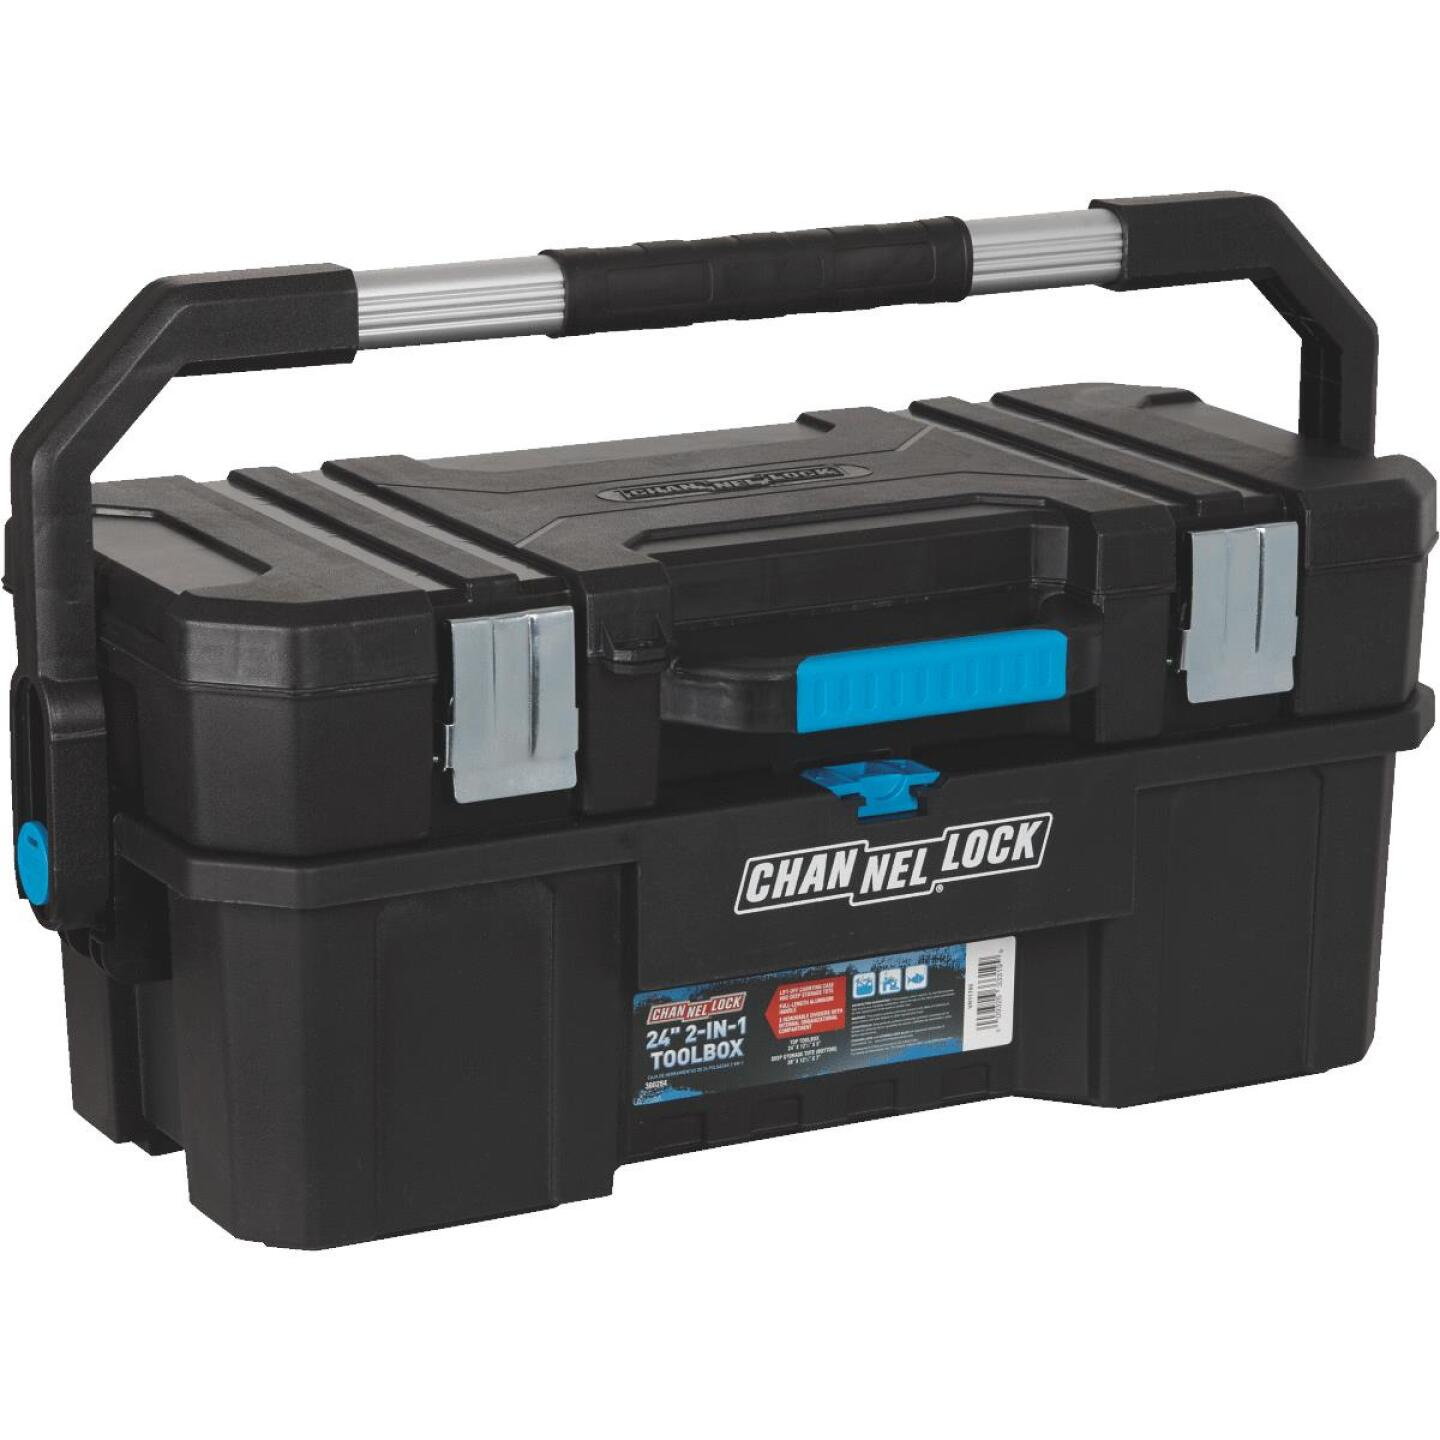 Channellock 24 In. 2-in-1 Toolbox Image 3